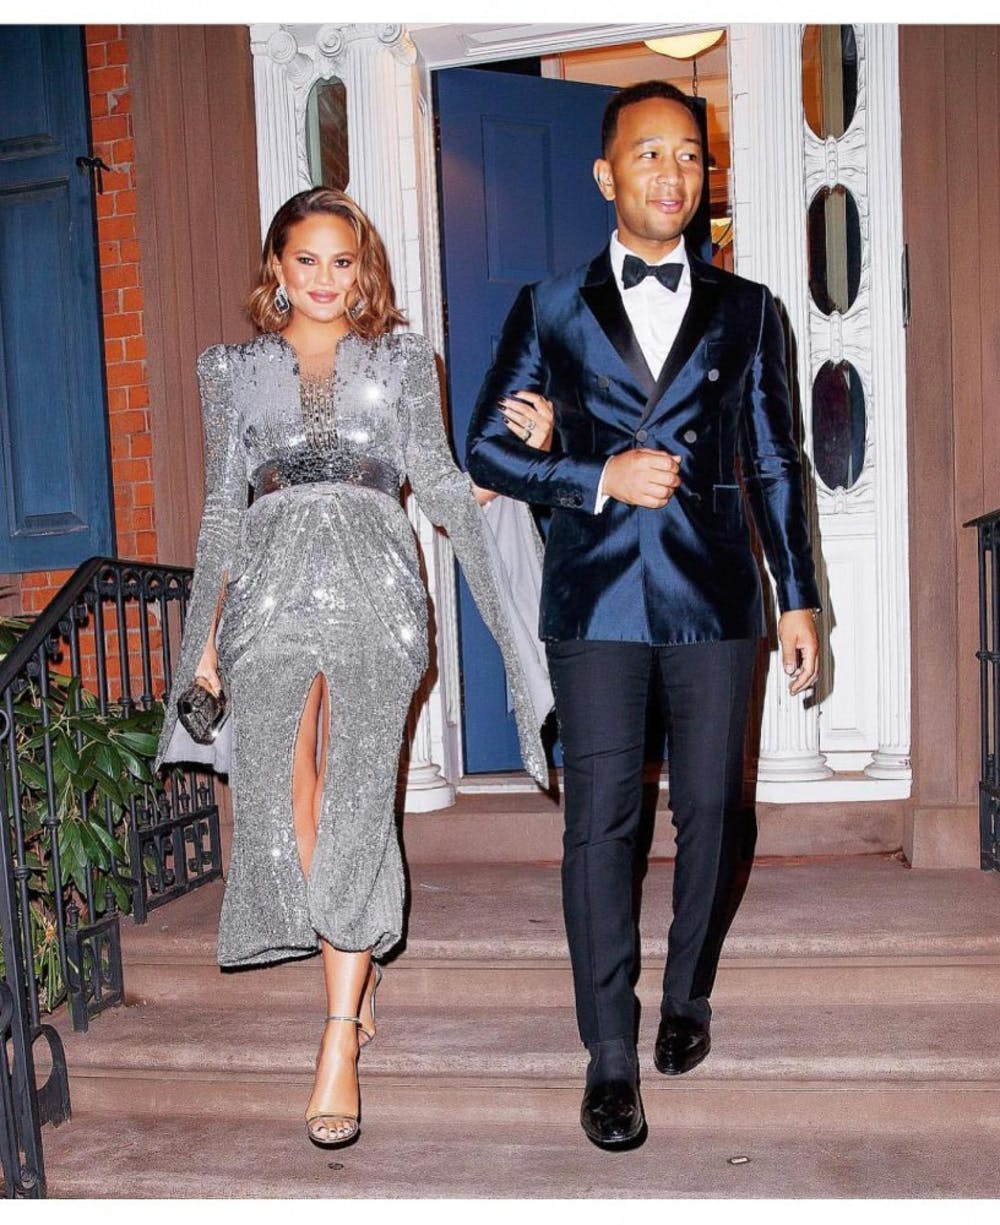 Celebrity couples to live vicariously through this Valentine's Day